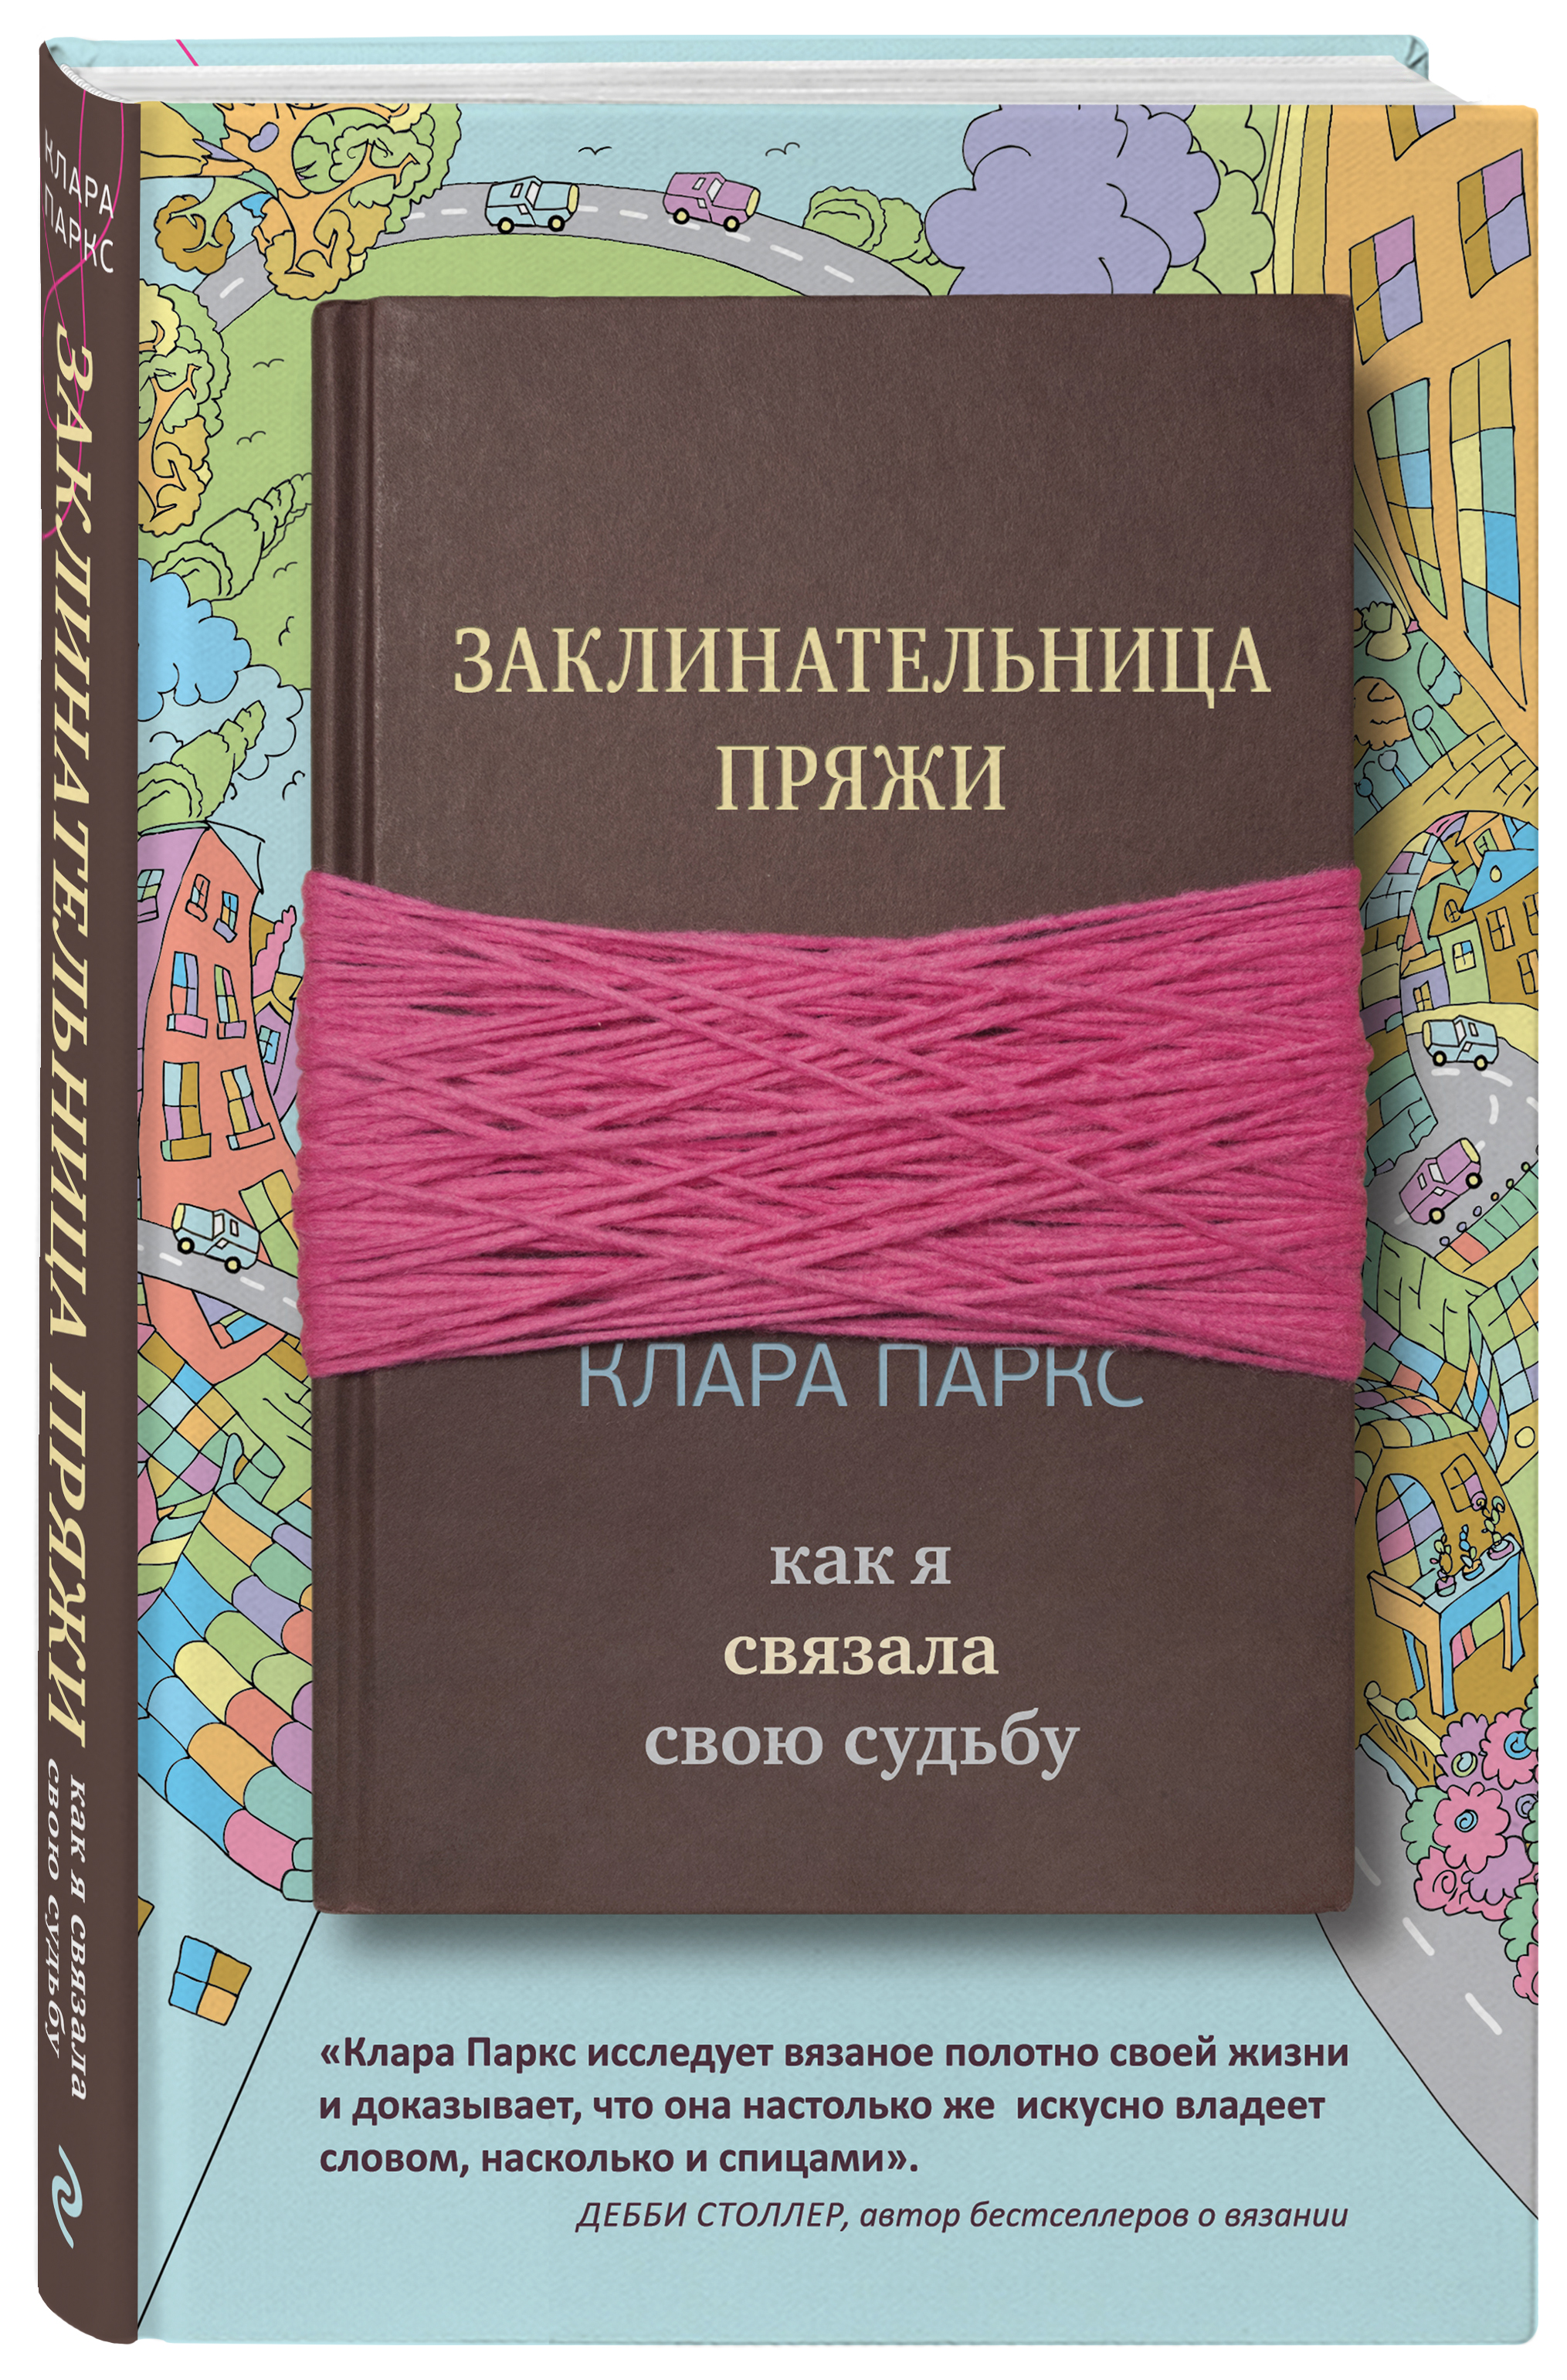 Яркий шепот: моя невероятная жизнь в вязании (The Yarn Whisperer: My Unexpected Life in Knitting) ISBN: 978-5-04-095127-7 the whisperer in darkness